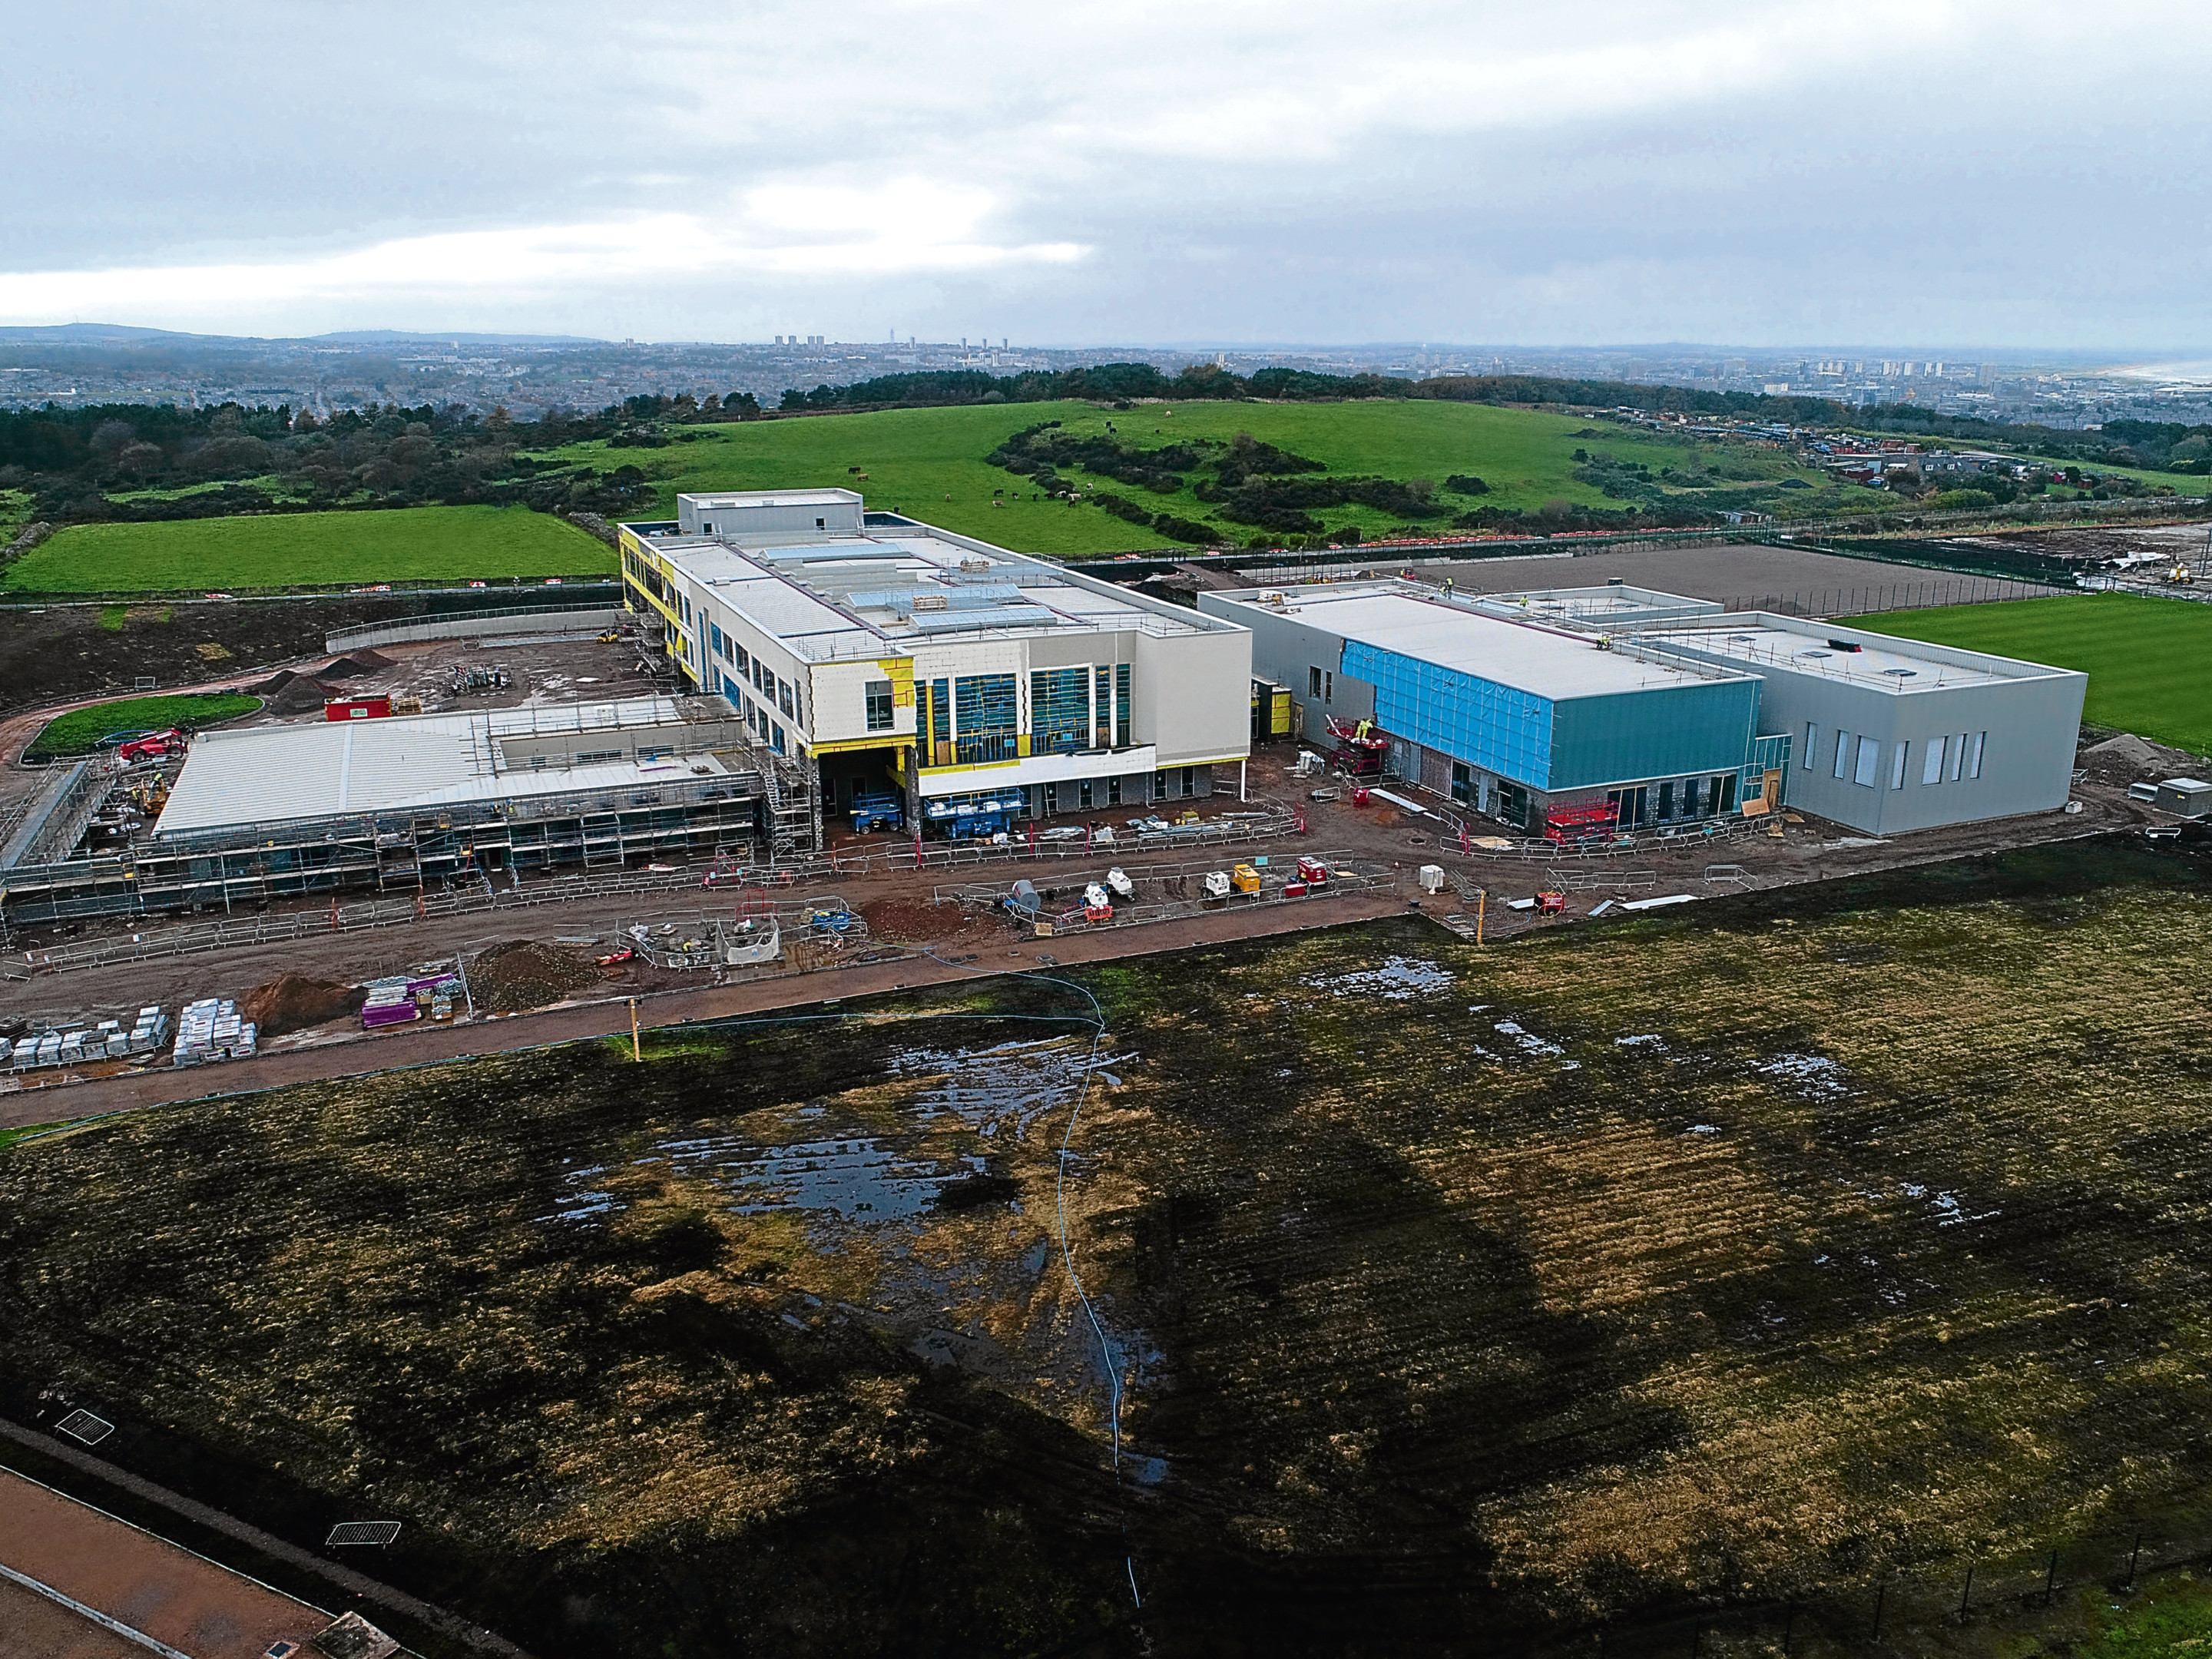 The new Lochside Academy